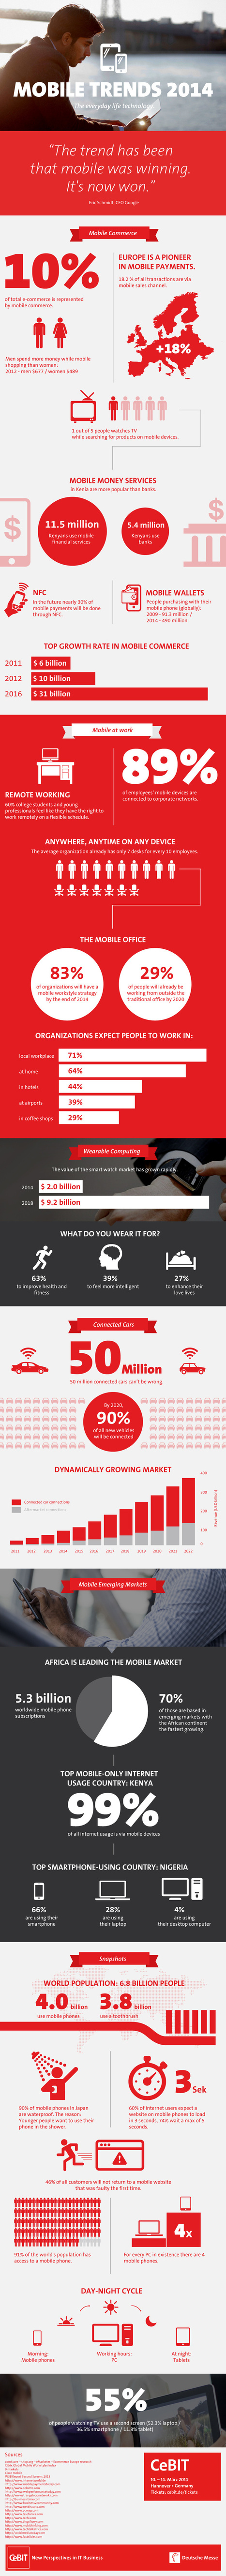 """Mobile Trends 2014"" Infographic - Das CeBIT-Blog 